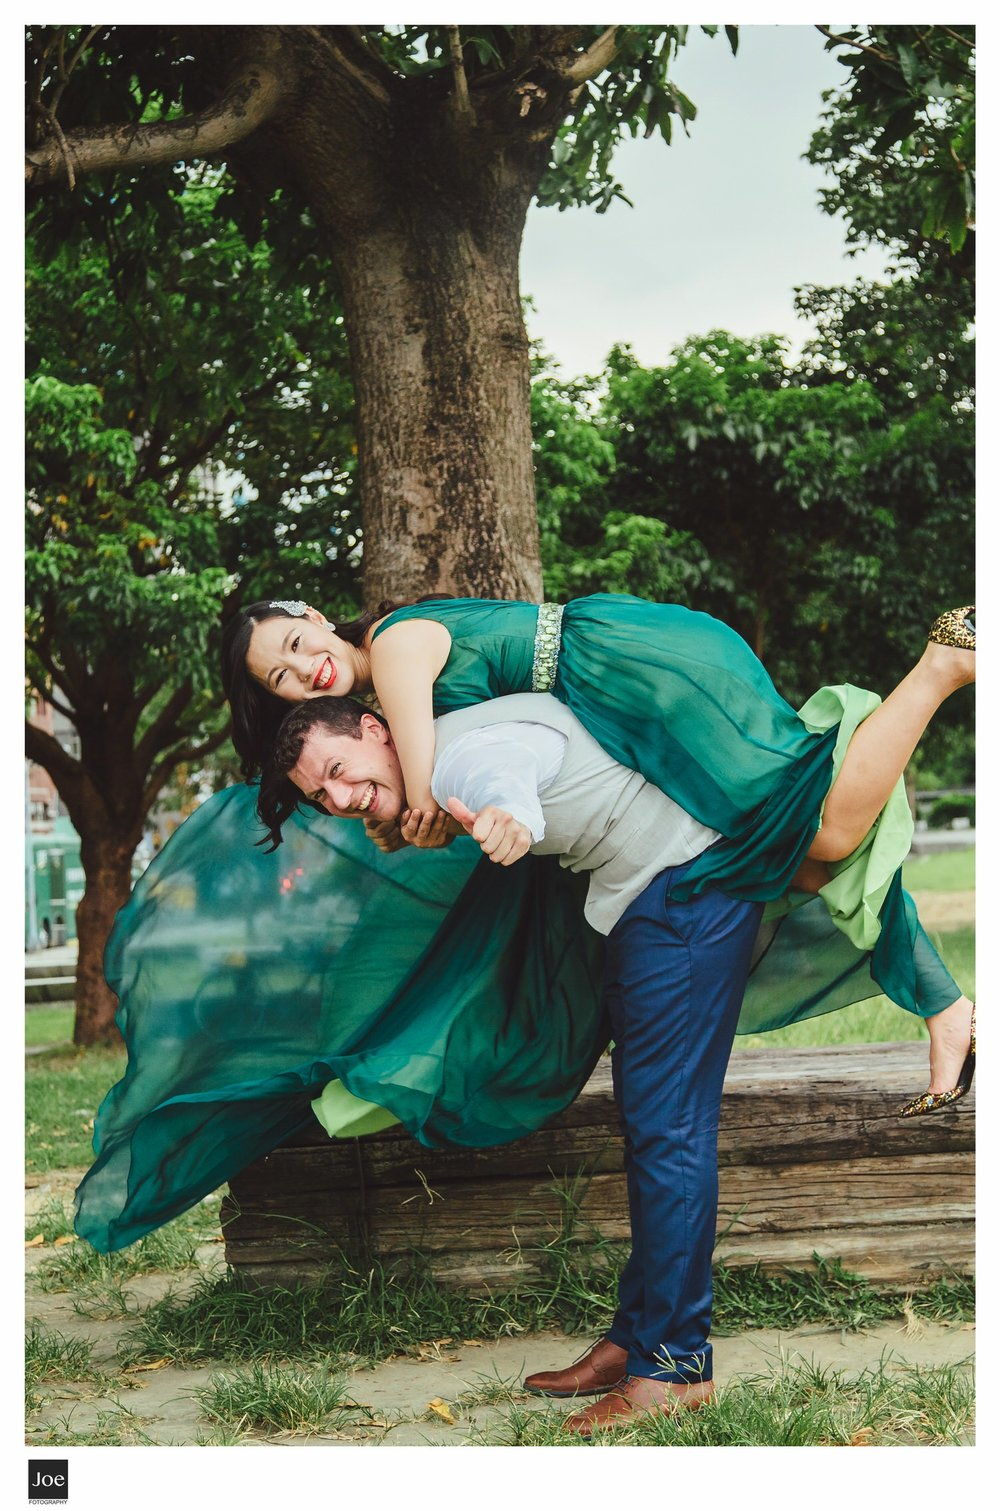 joe-fotography-pre-wedding-kay-jeff-045.jpg